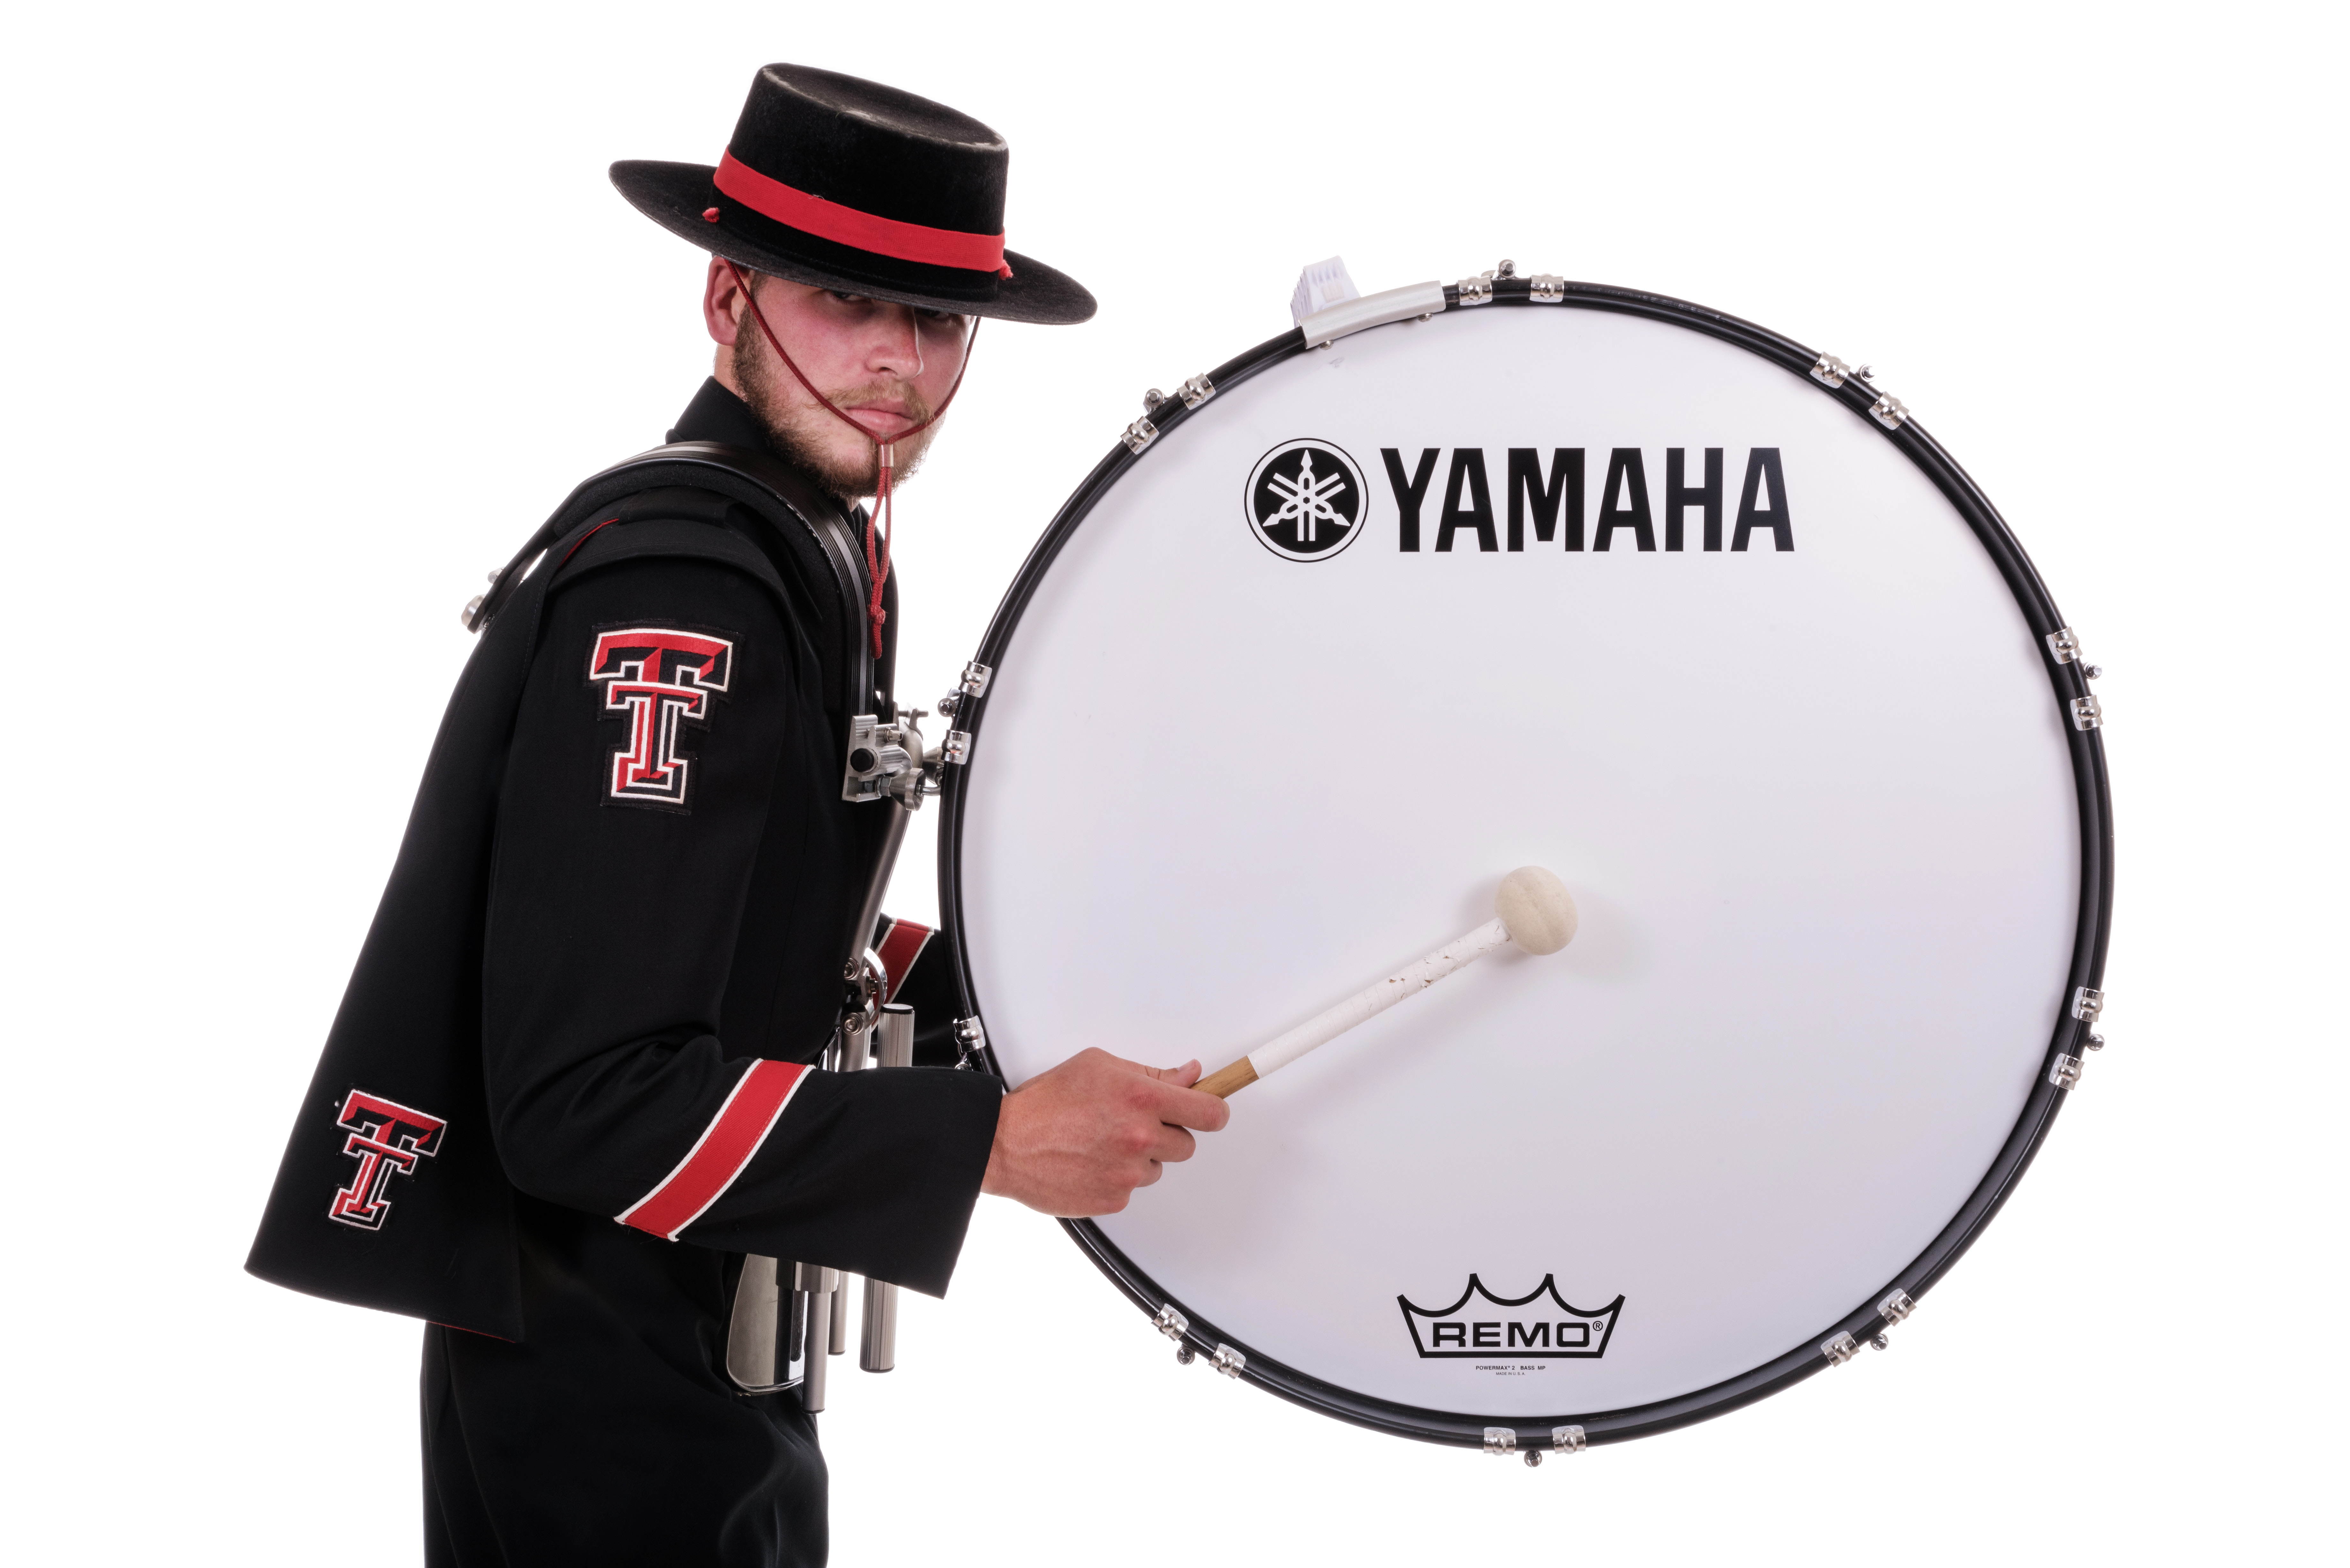 texas tech university s goin band from raiderland marches with yamaha marching percussion. Black Bedroom Furniture Sets. Home Design Ideas